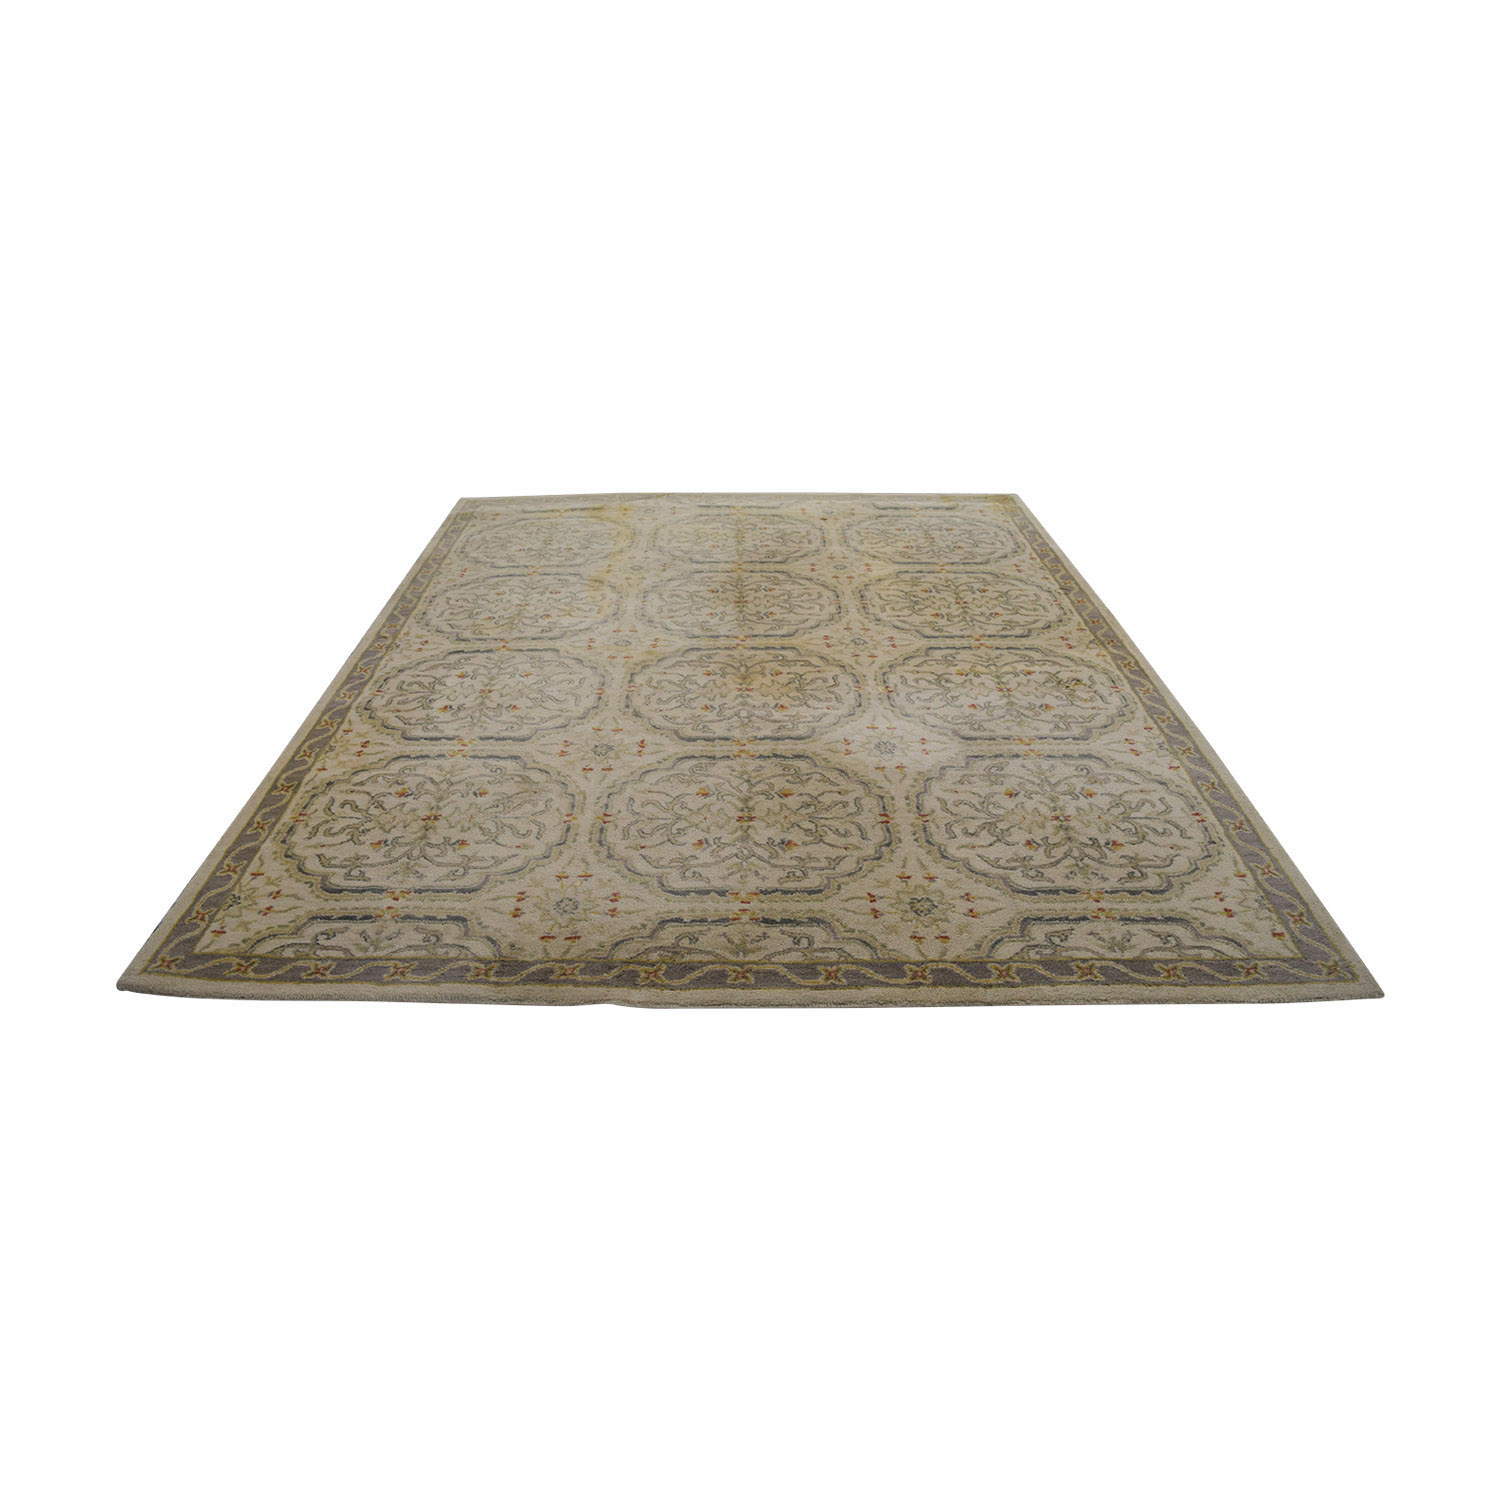 Pottery Barn Pottery Barn Beige and Grey Traditional Rug Decor